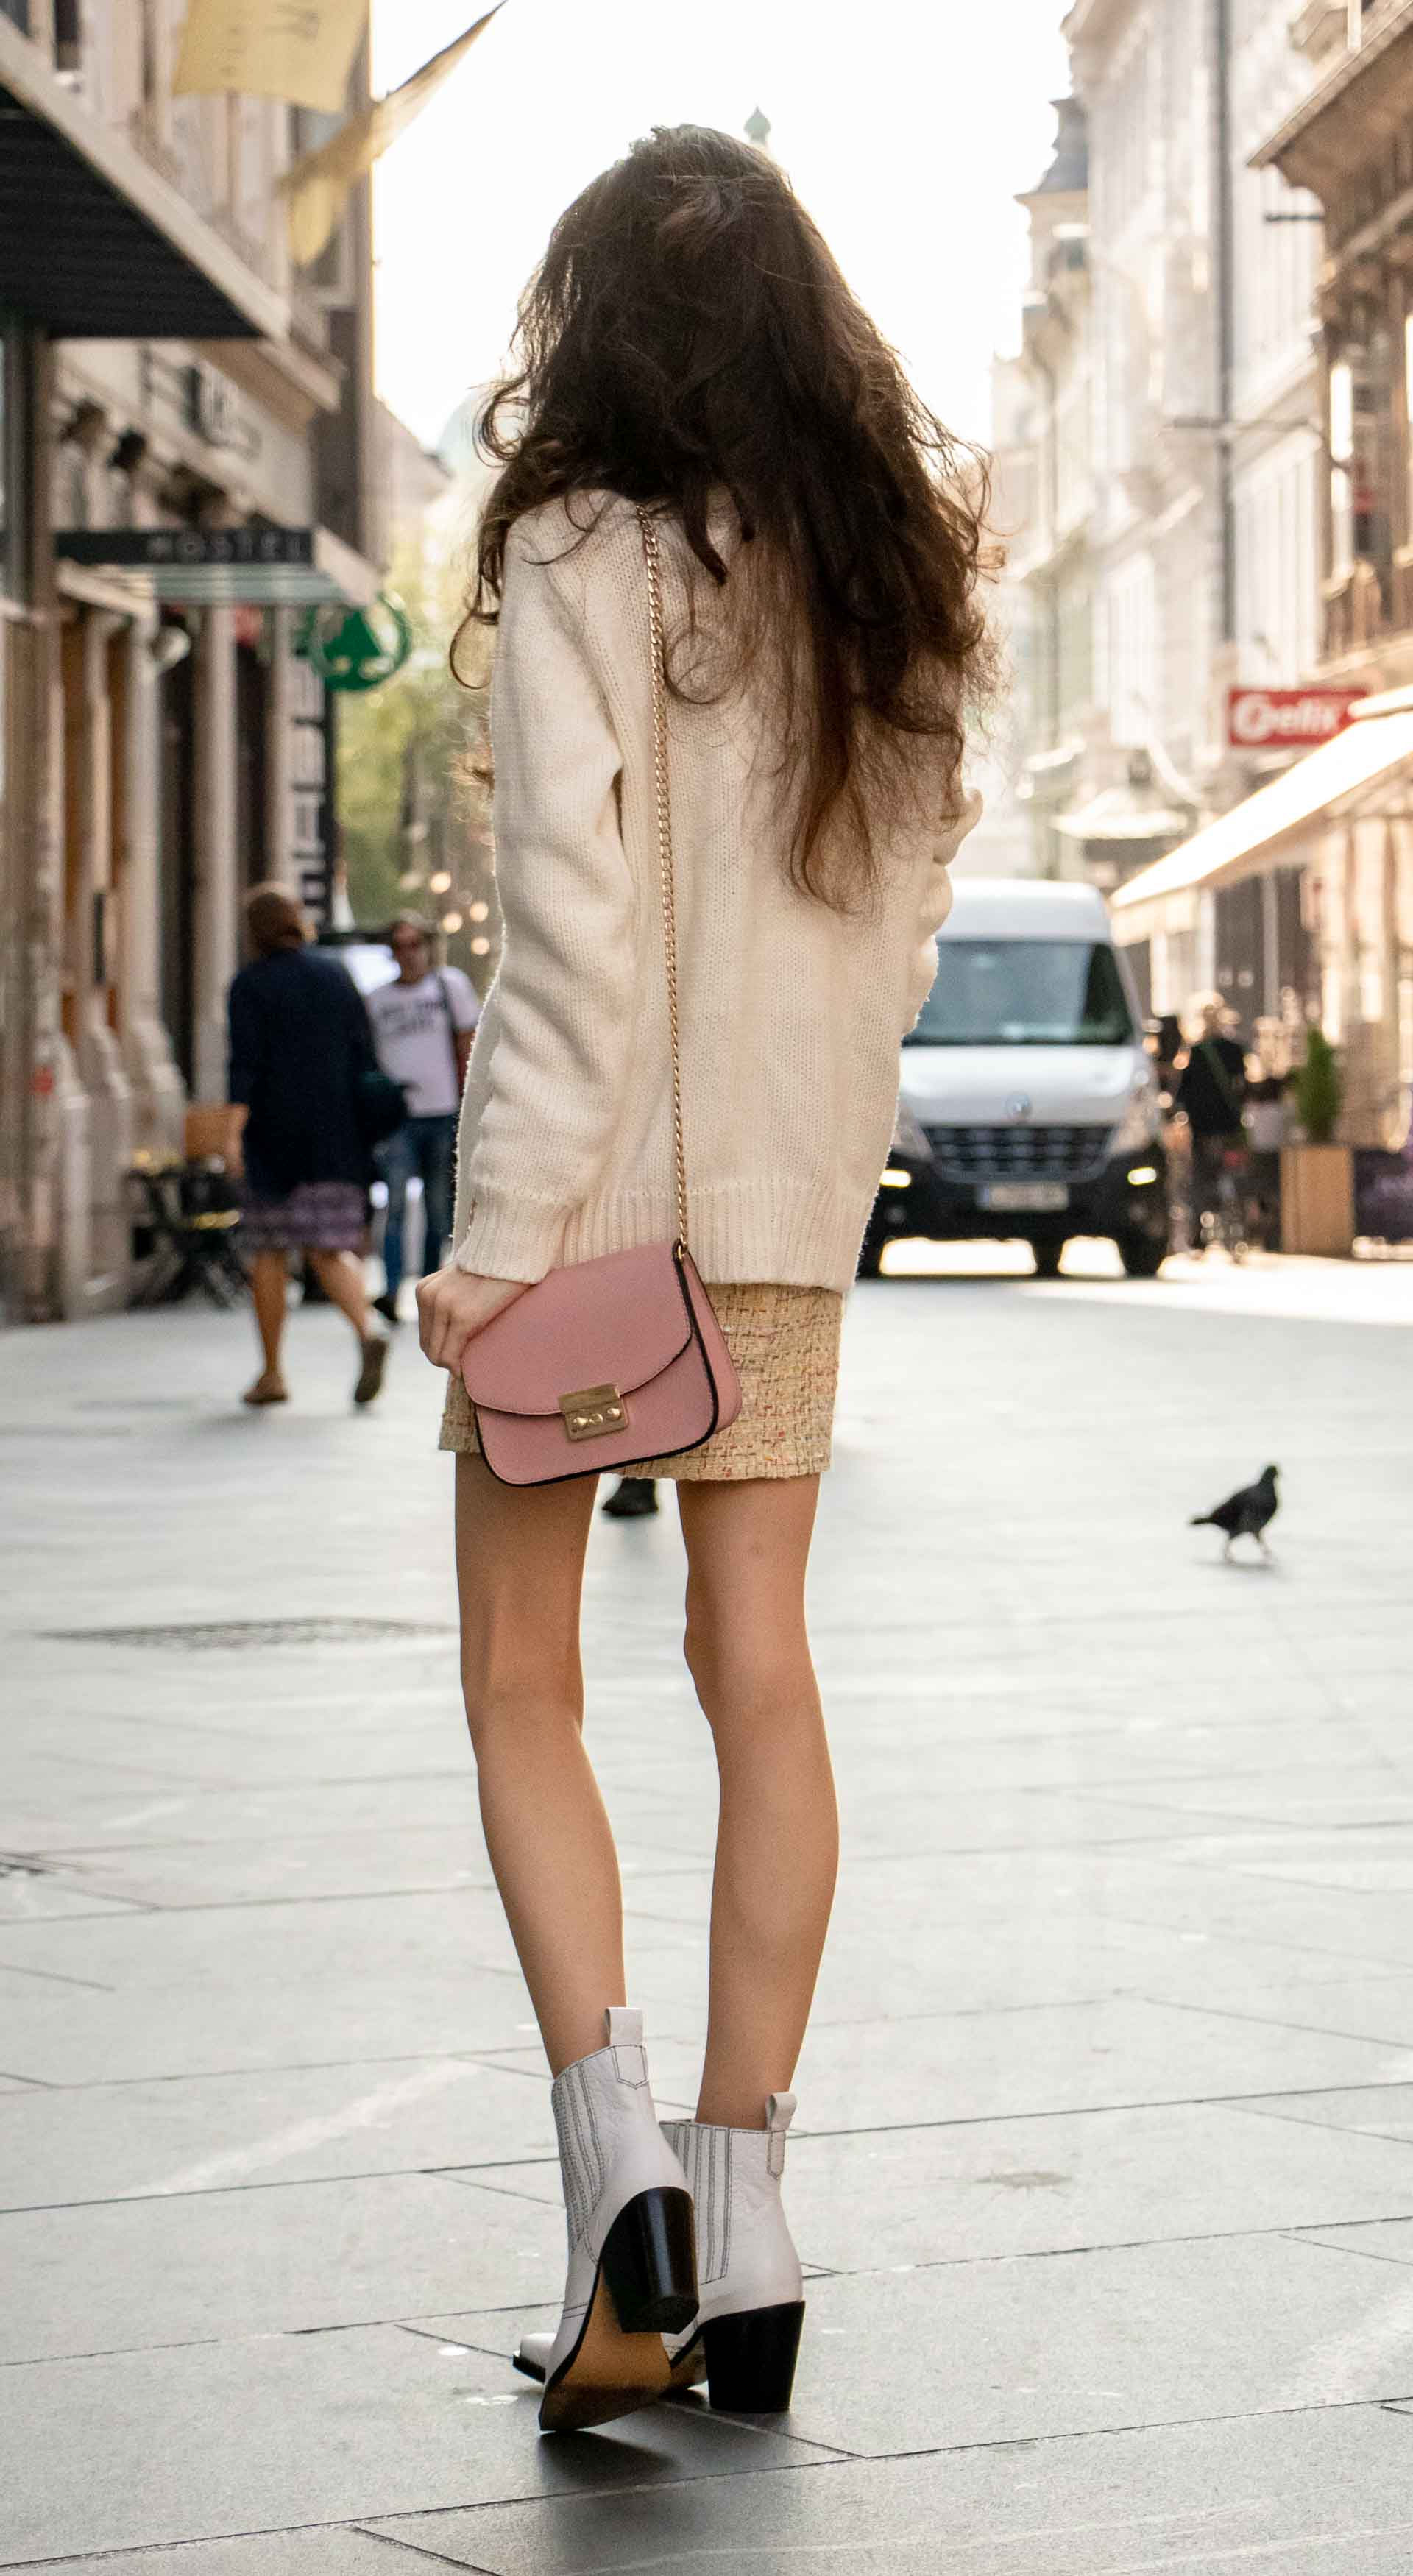 Beautiful Slovenian Fashion Blogger Veronika Lipar of Brunette from Wall wearing white Ganni Western boots, yellow tweed skirt, white turtleneck sweater, chain strap shoulder bag standing on the street in the morning in Ljubljana in fall